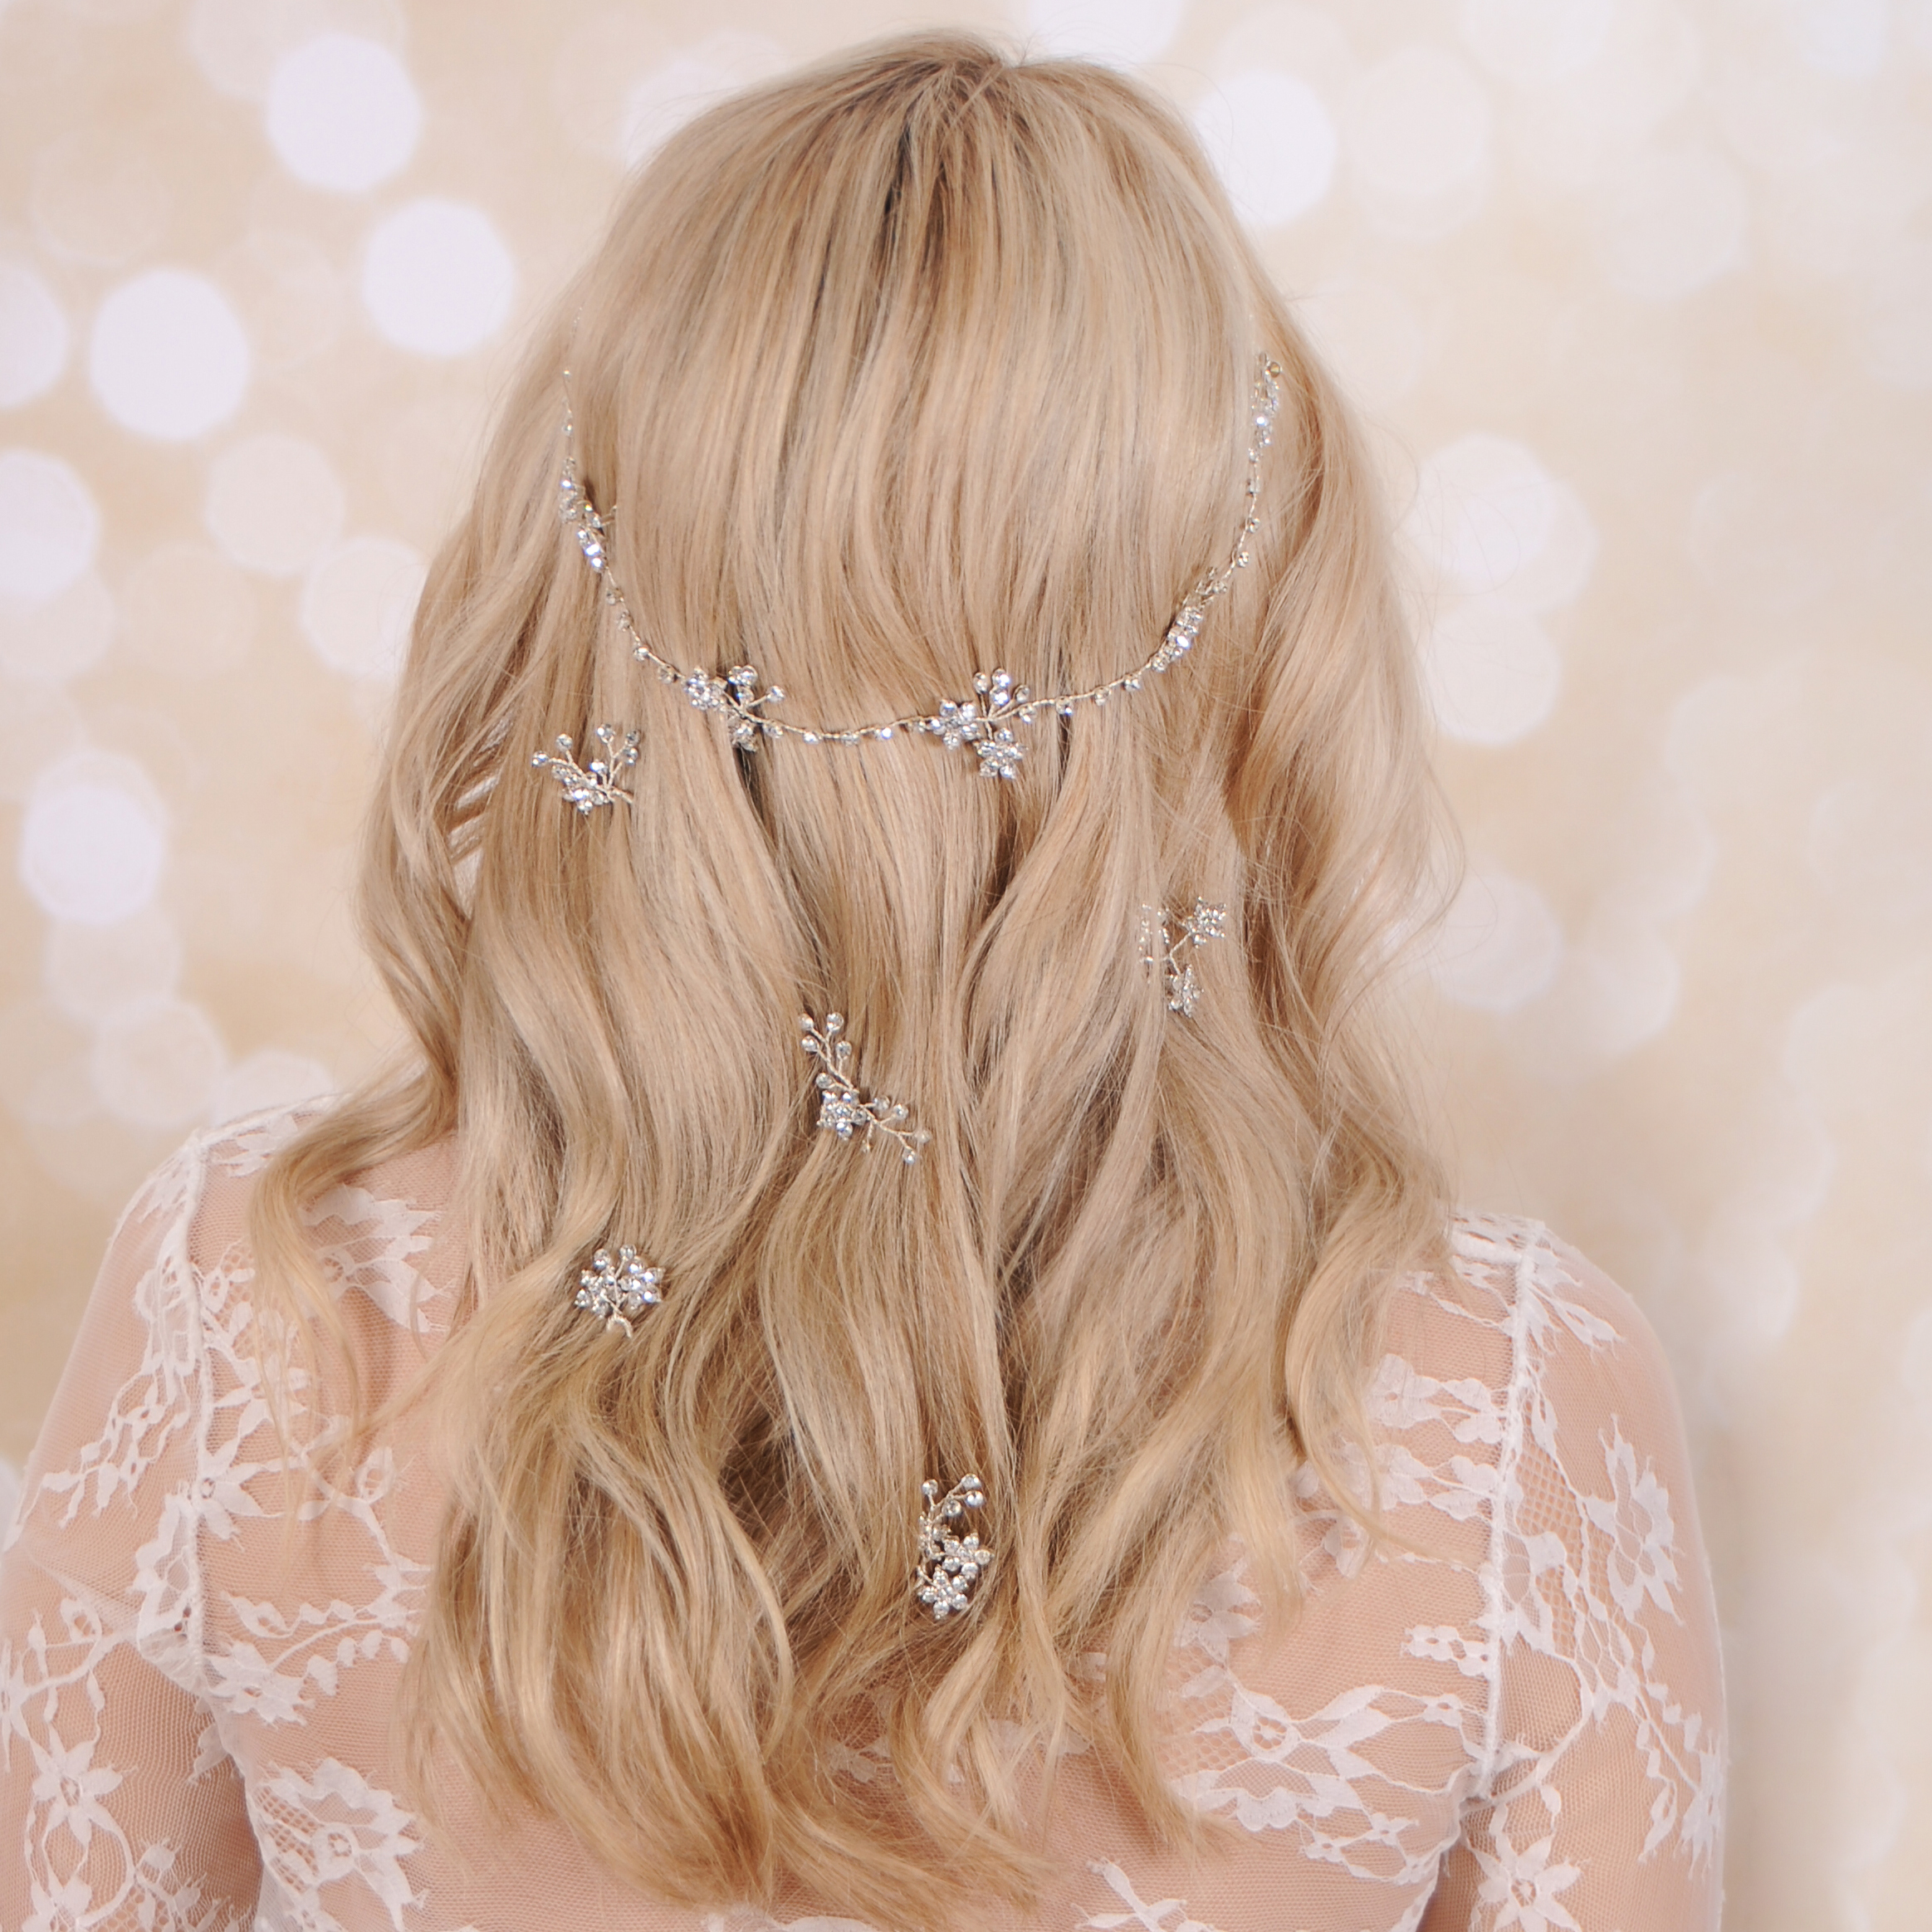 GYPSOPHILA hair vine and pin set